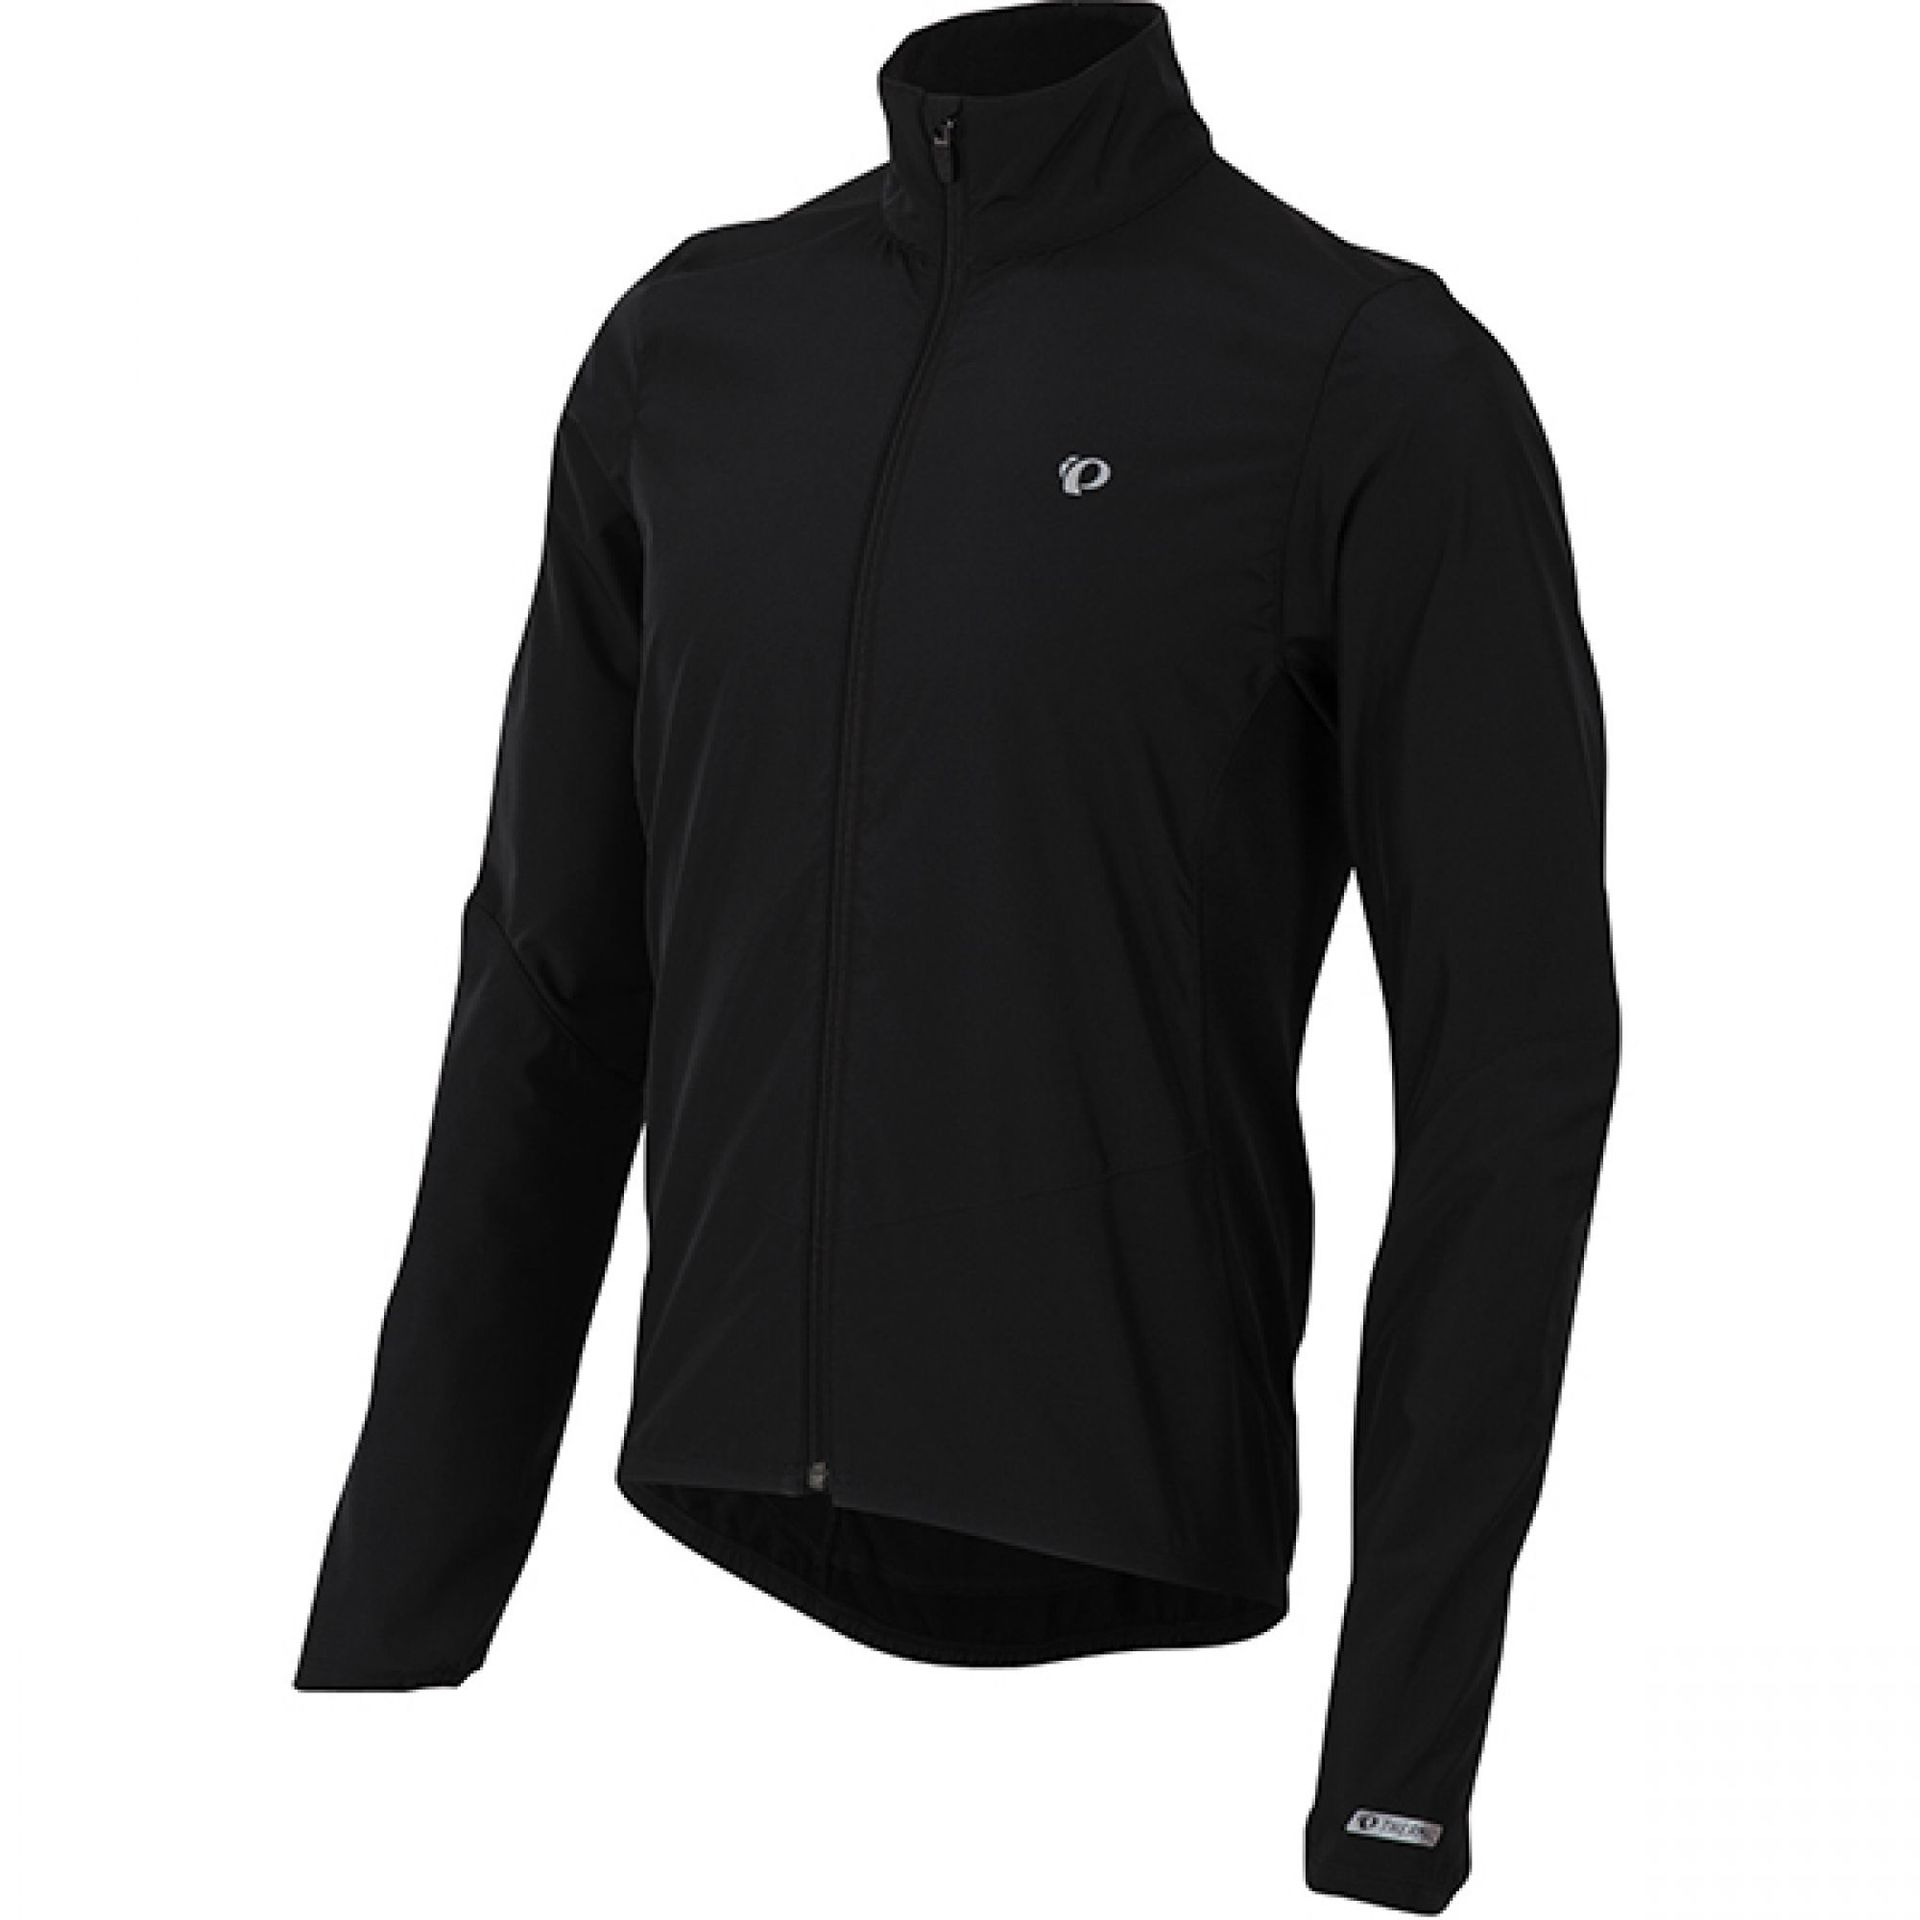 KURTKA ROWEROWA PEARL IZUMI SELECT THERMAL BARRIER BLACK